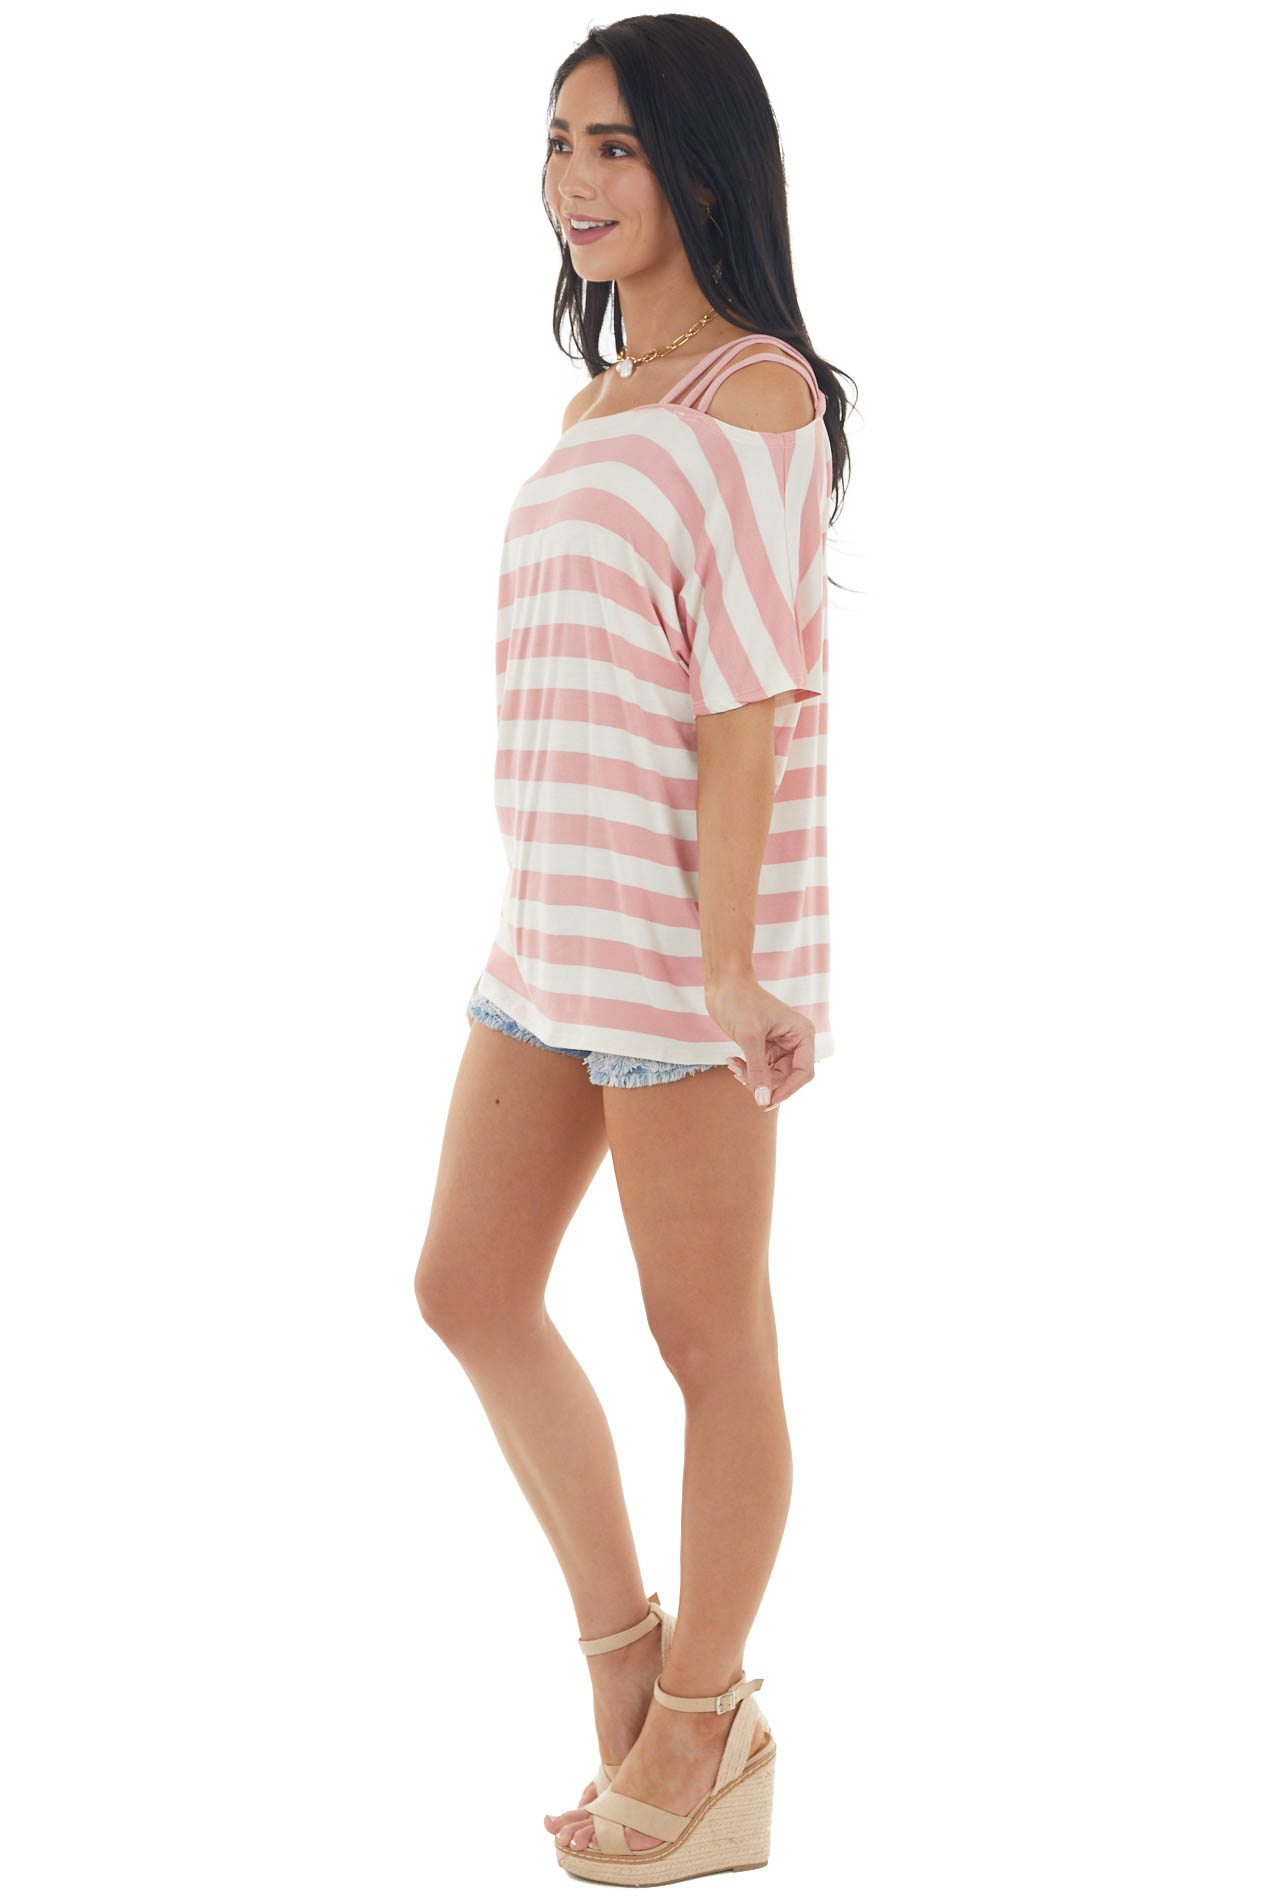 Blush Pink and Cream Striped Cold Strapped Shoulder Knit Top